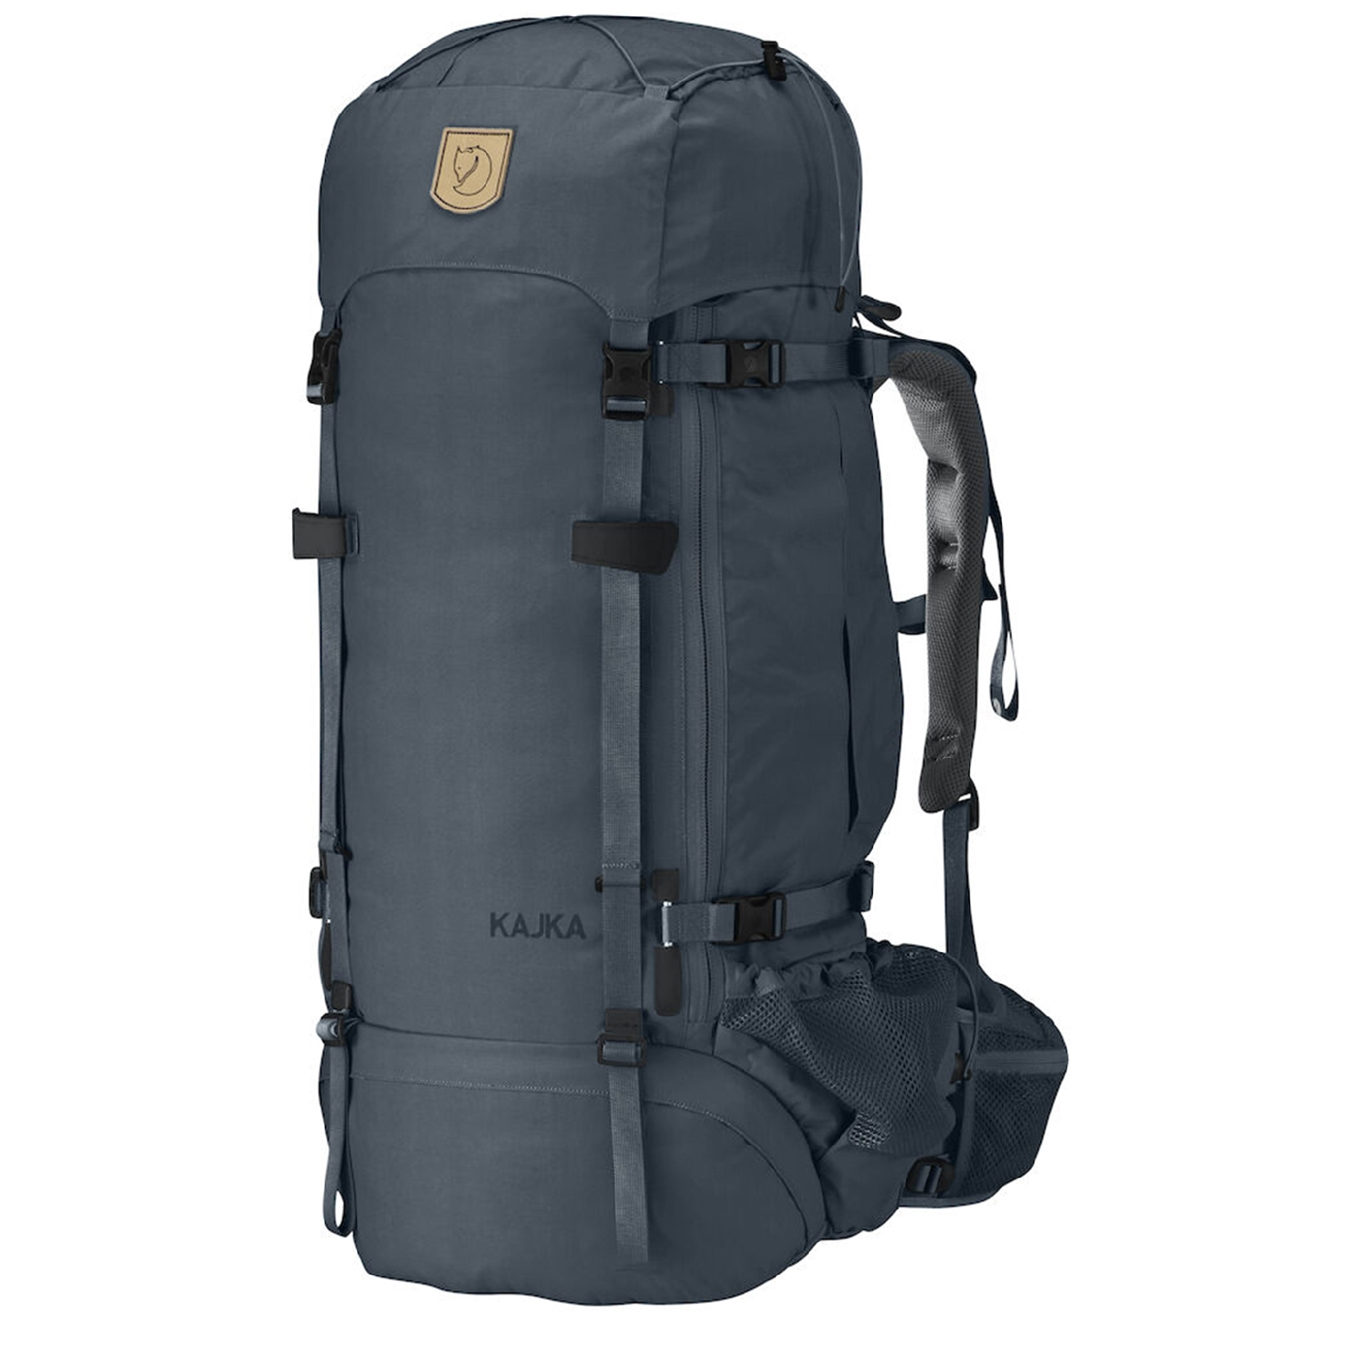 Fjallraven Kajka 75 graphite backpack